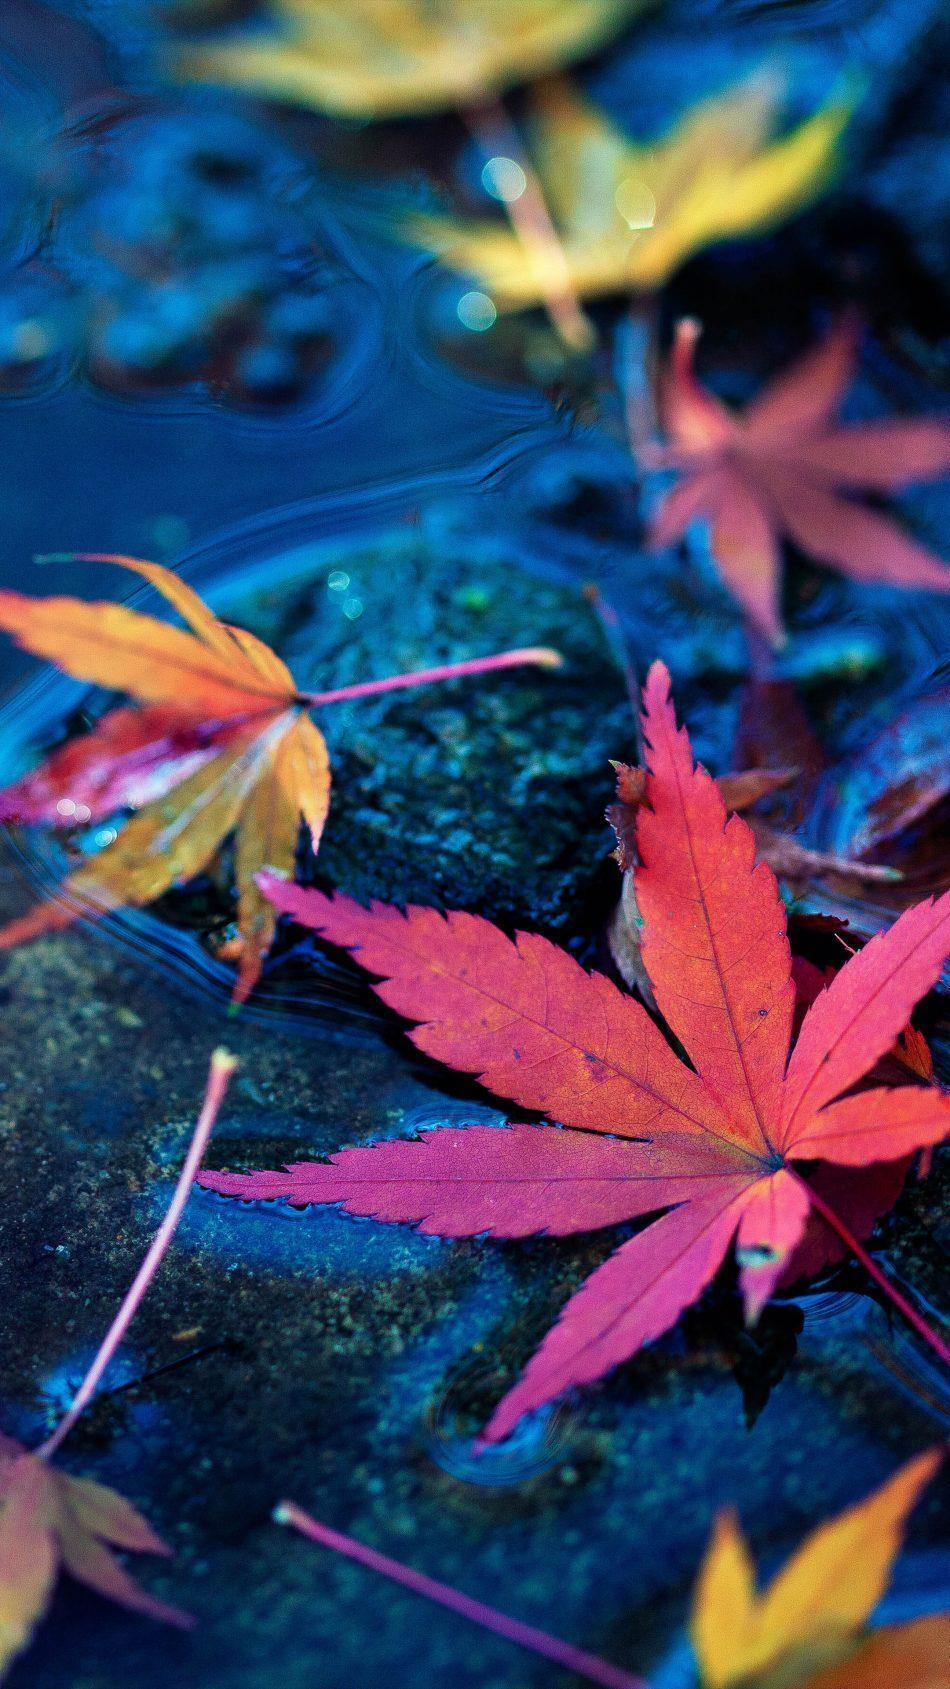 Colorful Leaves on the Floor Pic